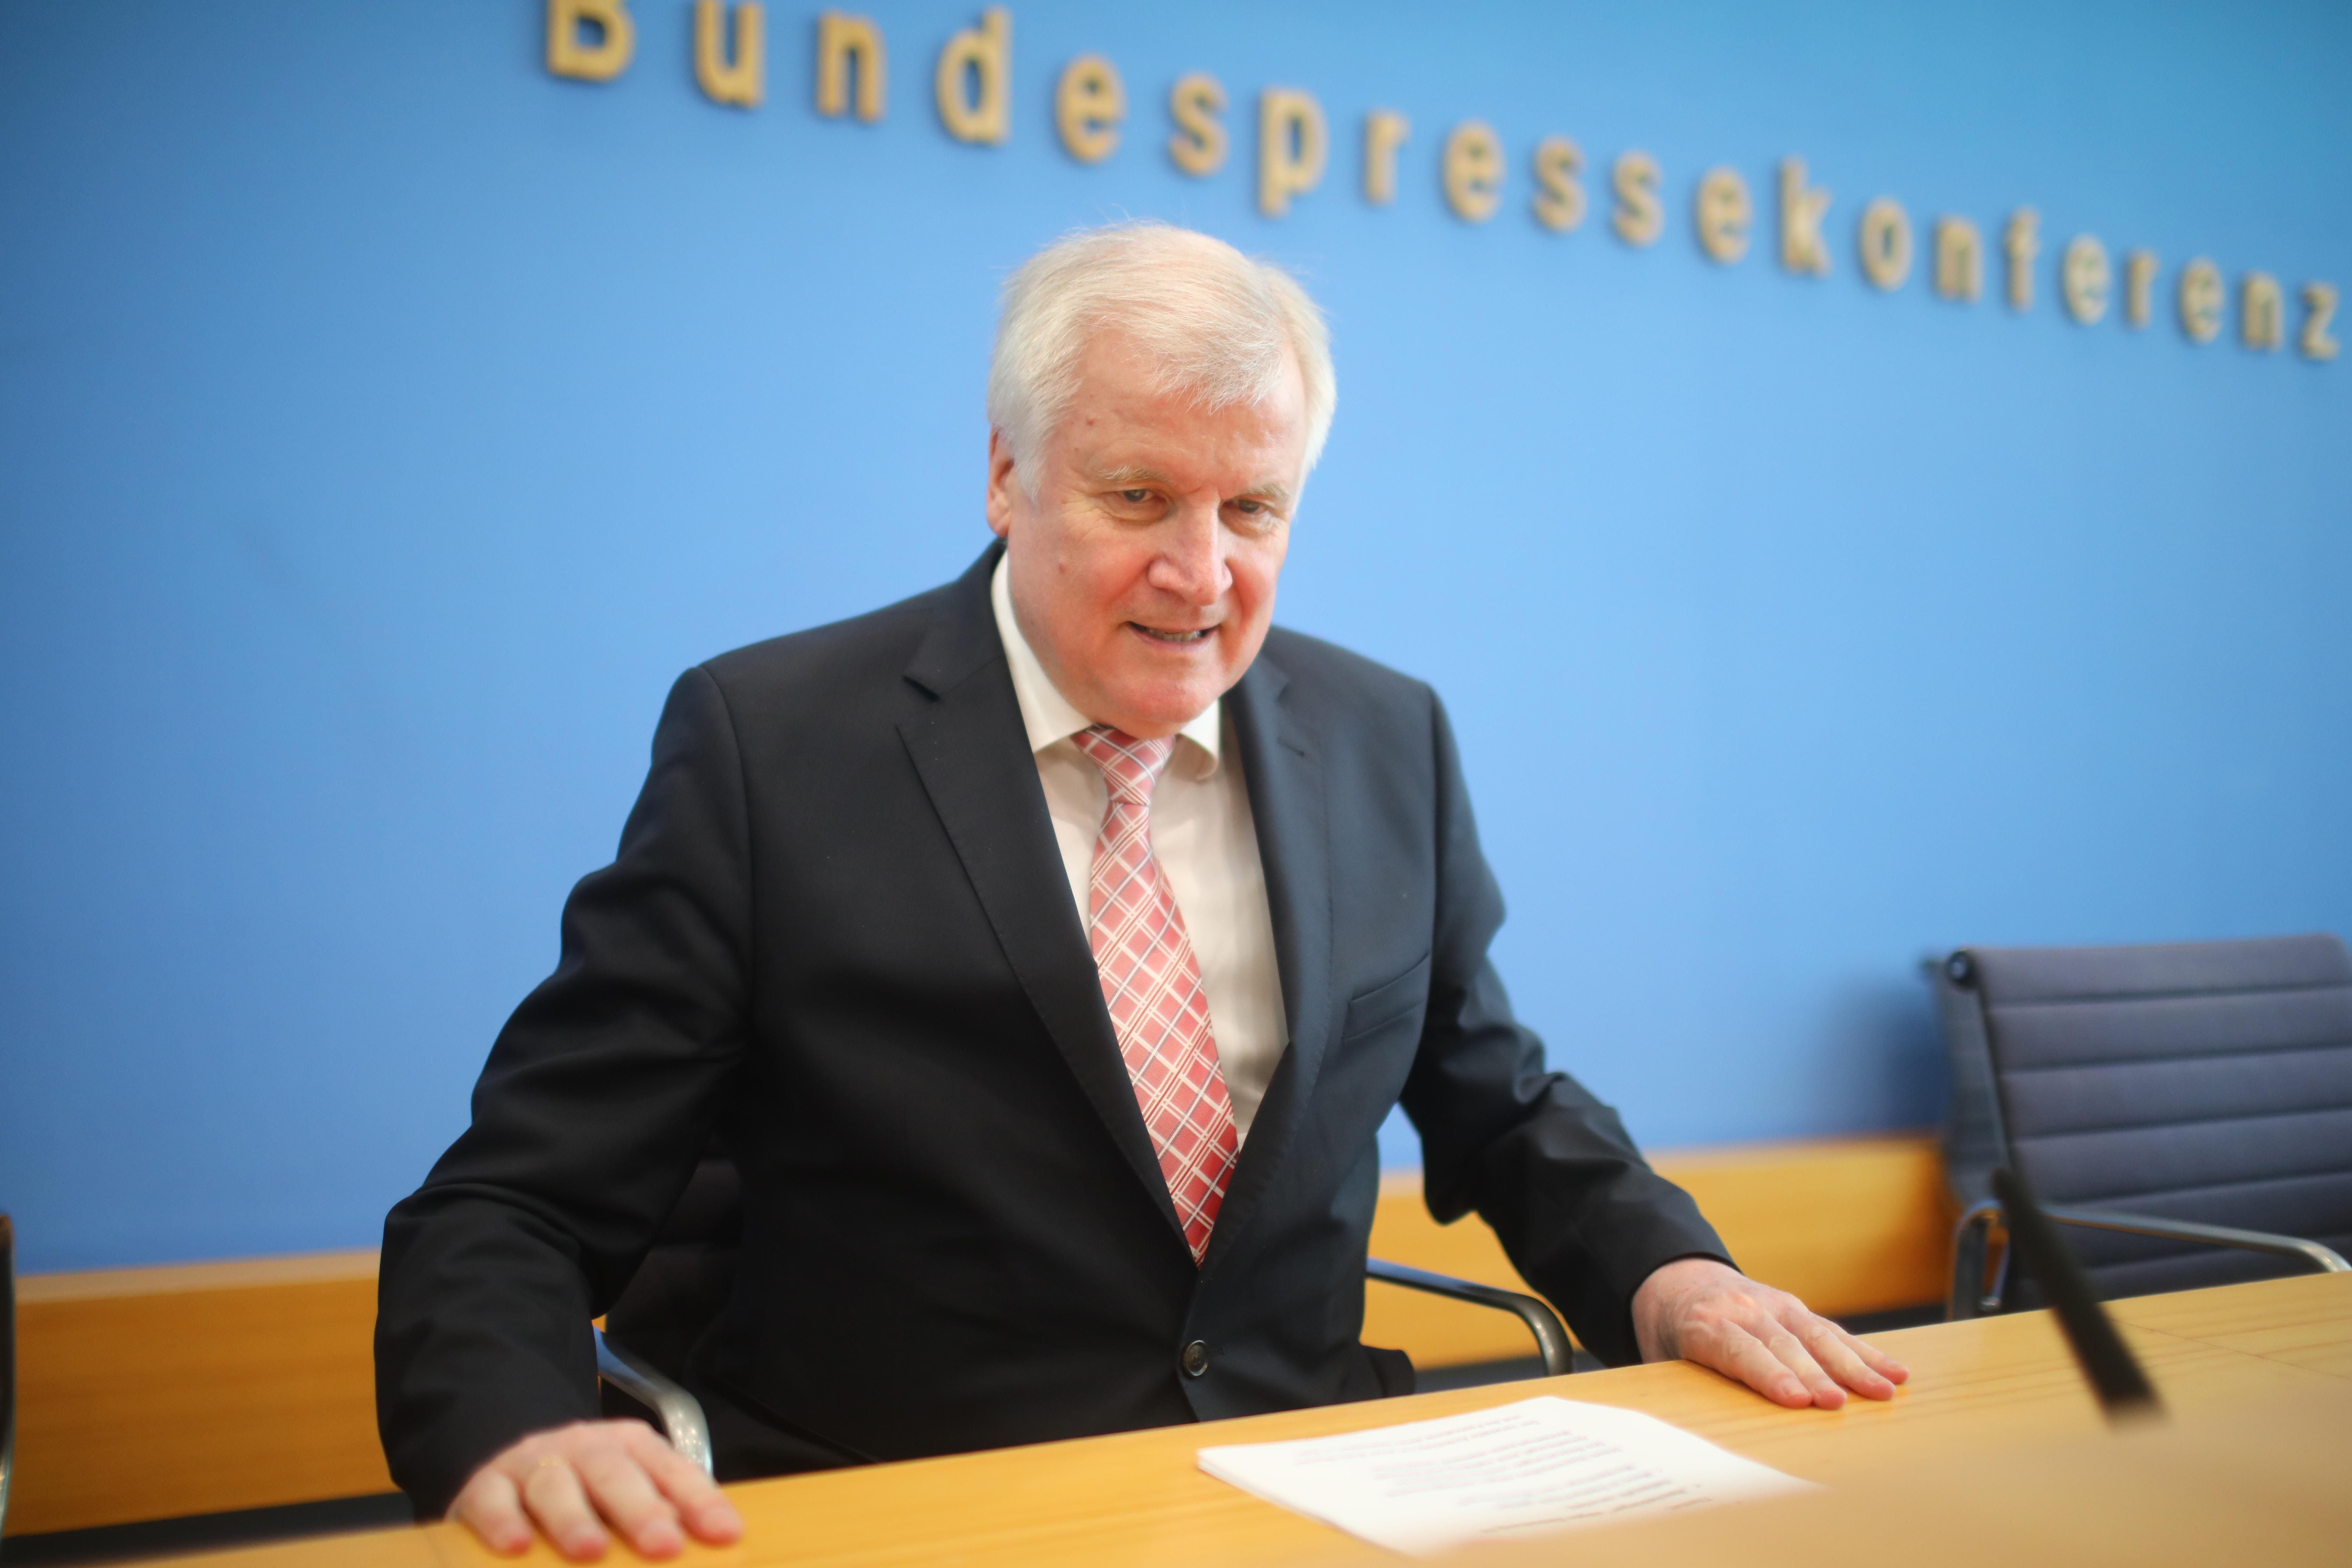 German Interior Minister Horst Seehofer attends a news conference in Berlin, Germany July 24, 2018. Hannibal Hanschke